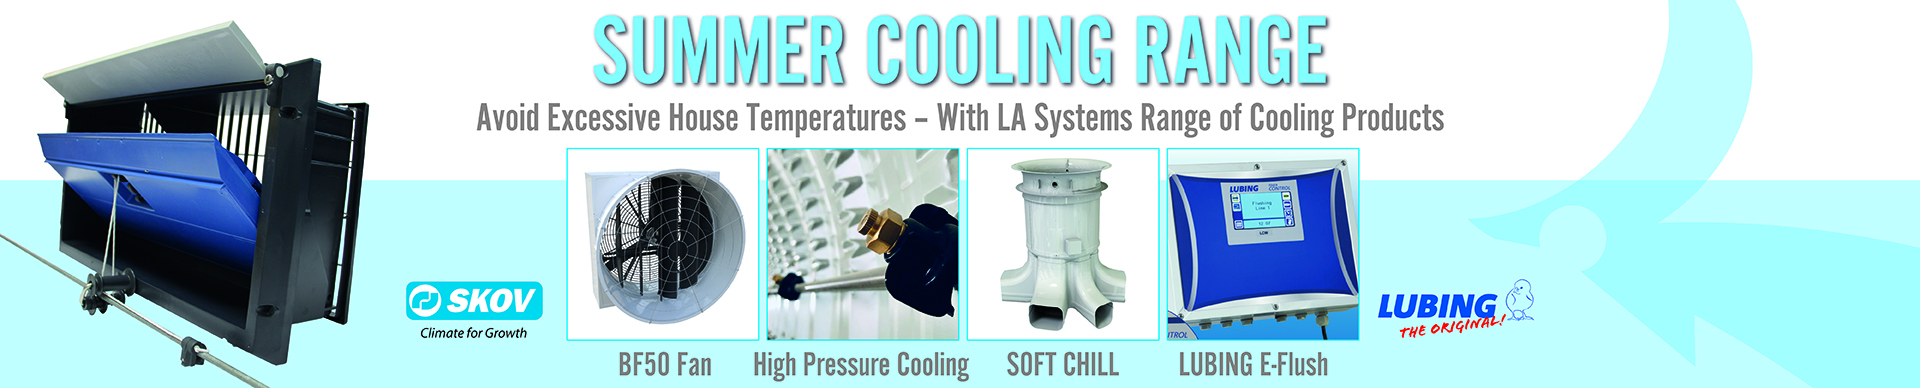 Summer Cooling Range - Avoid excessive house temperatures with la systems range of cooling products